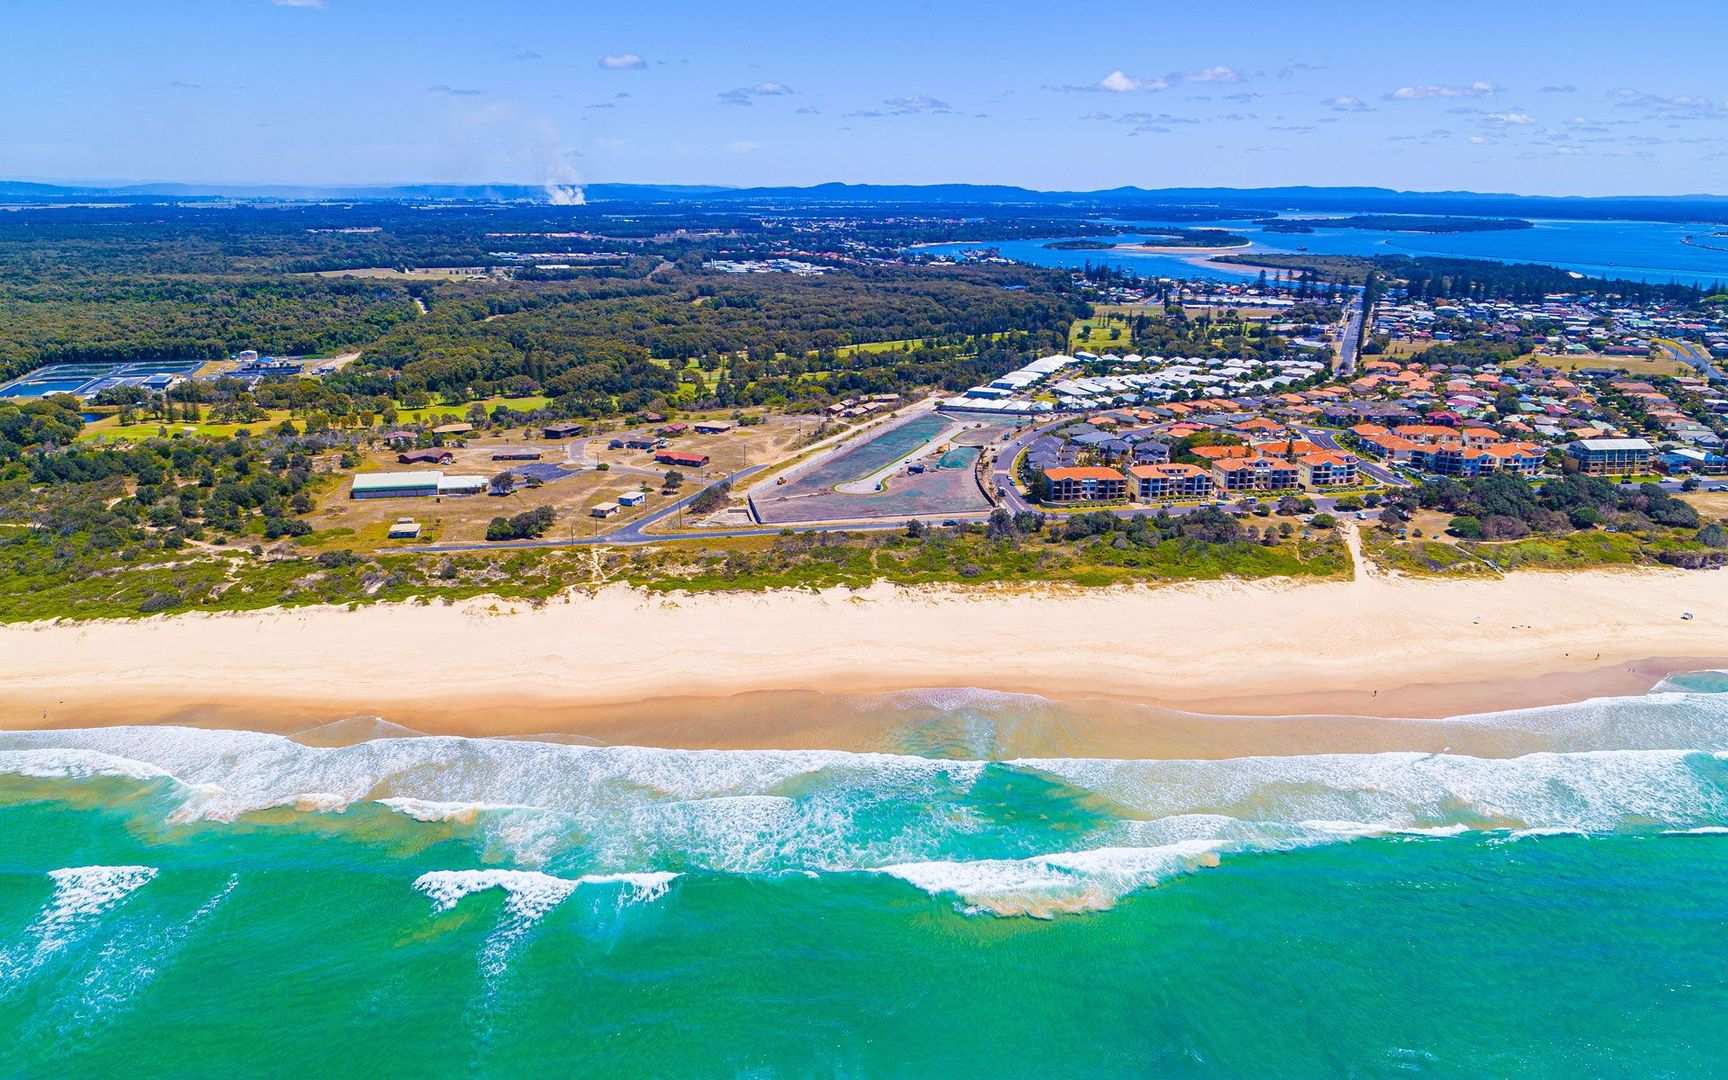 Lot 8 The Dunes Esta River Street, Yamba NSW 2464, Image 2